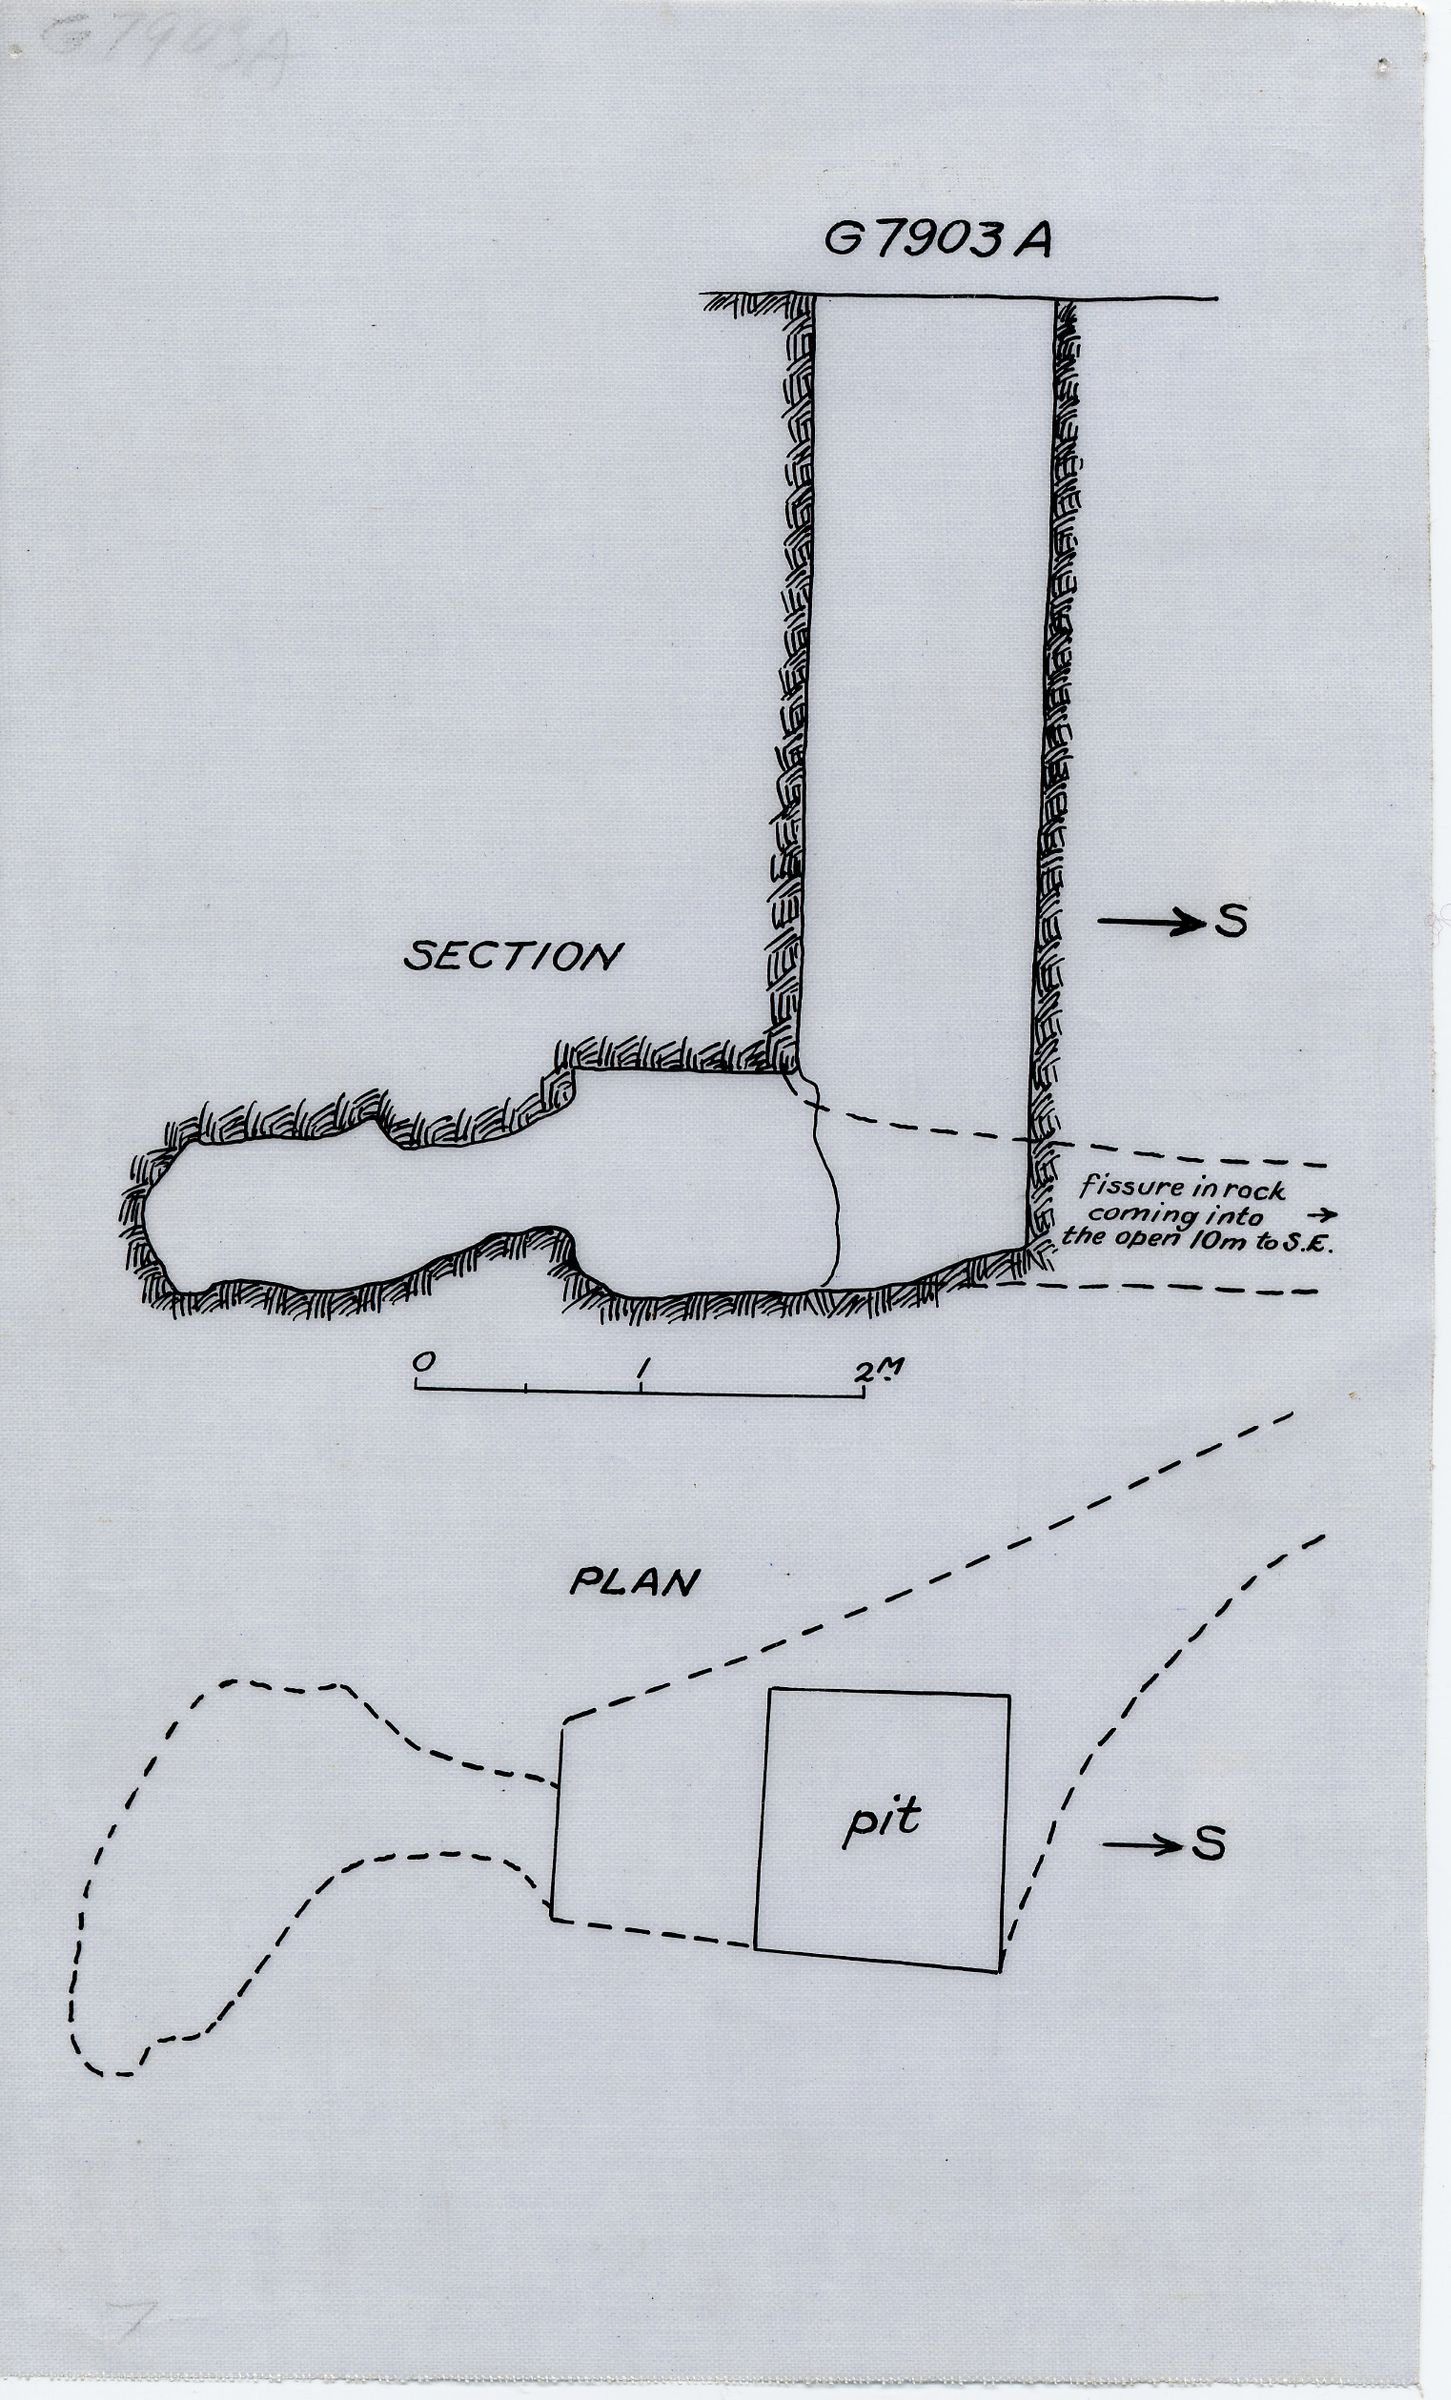 Maps and plans: G 7903, Shaft A